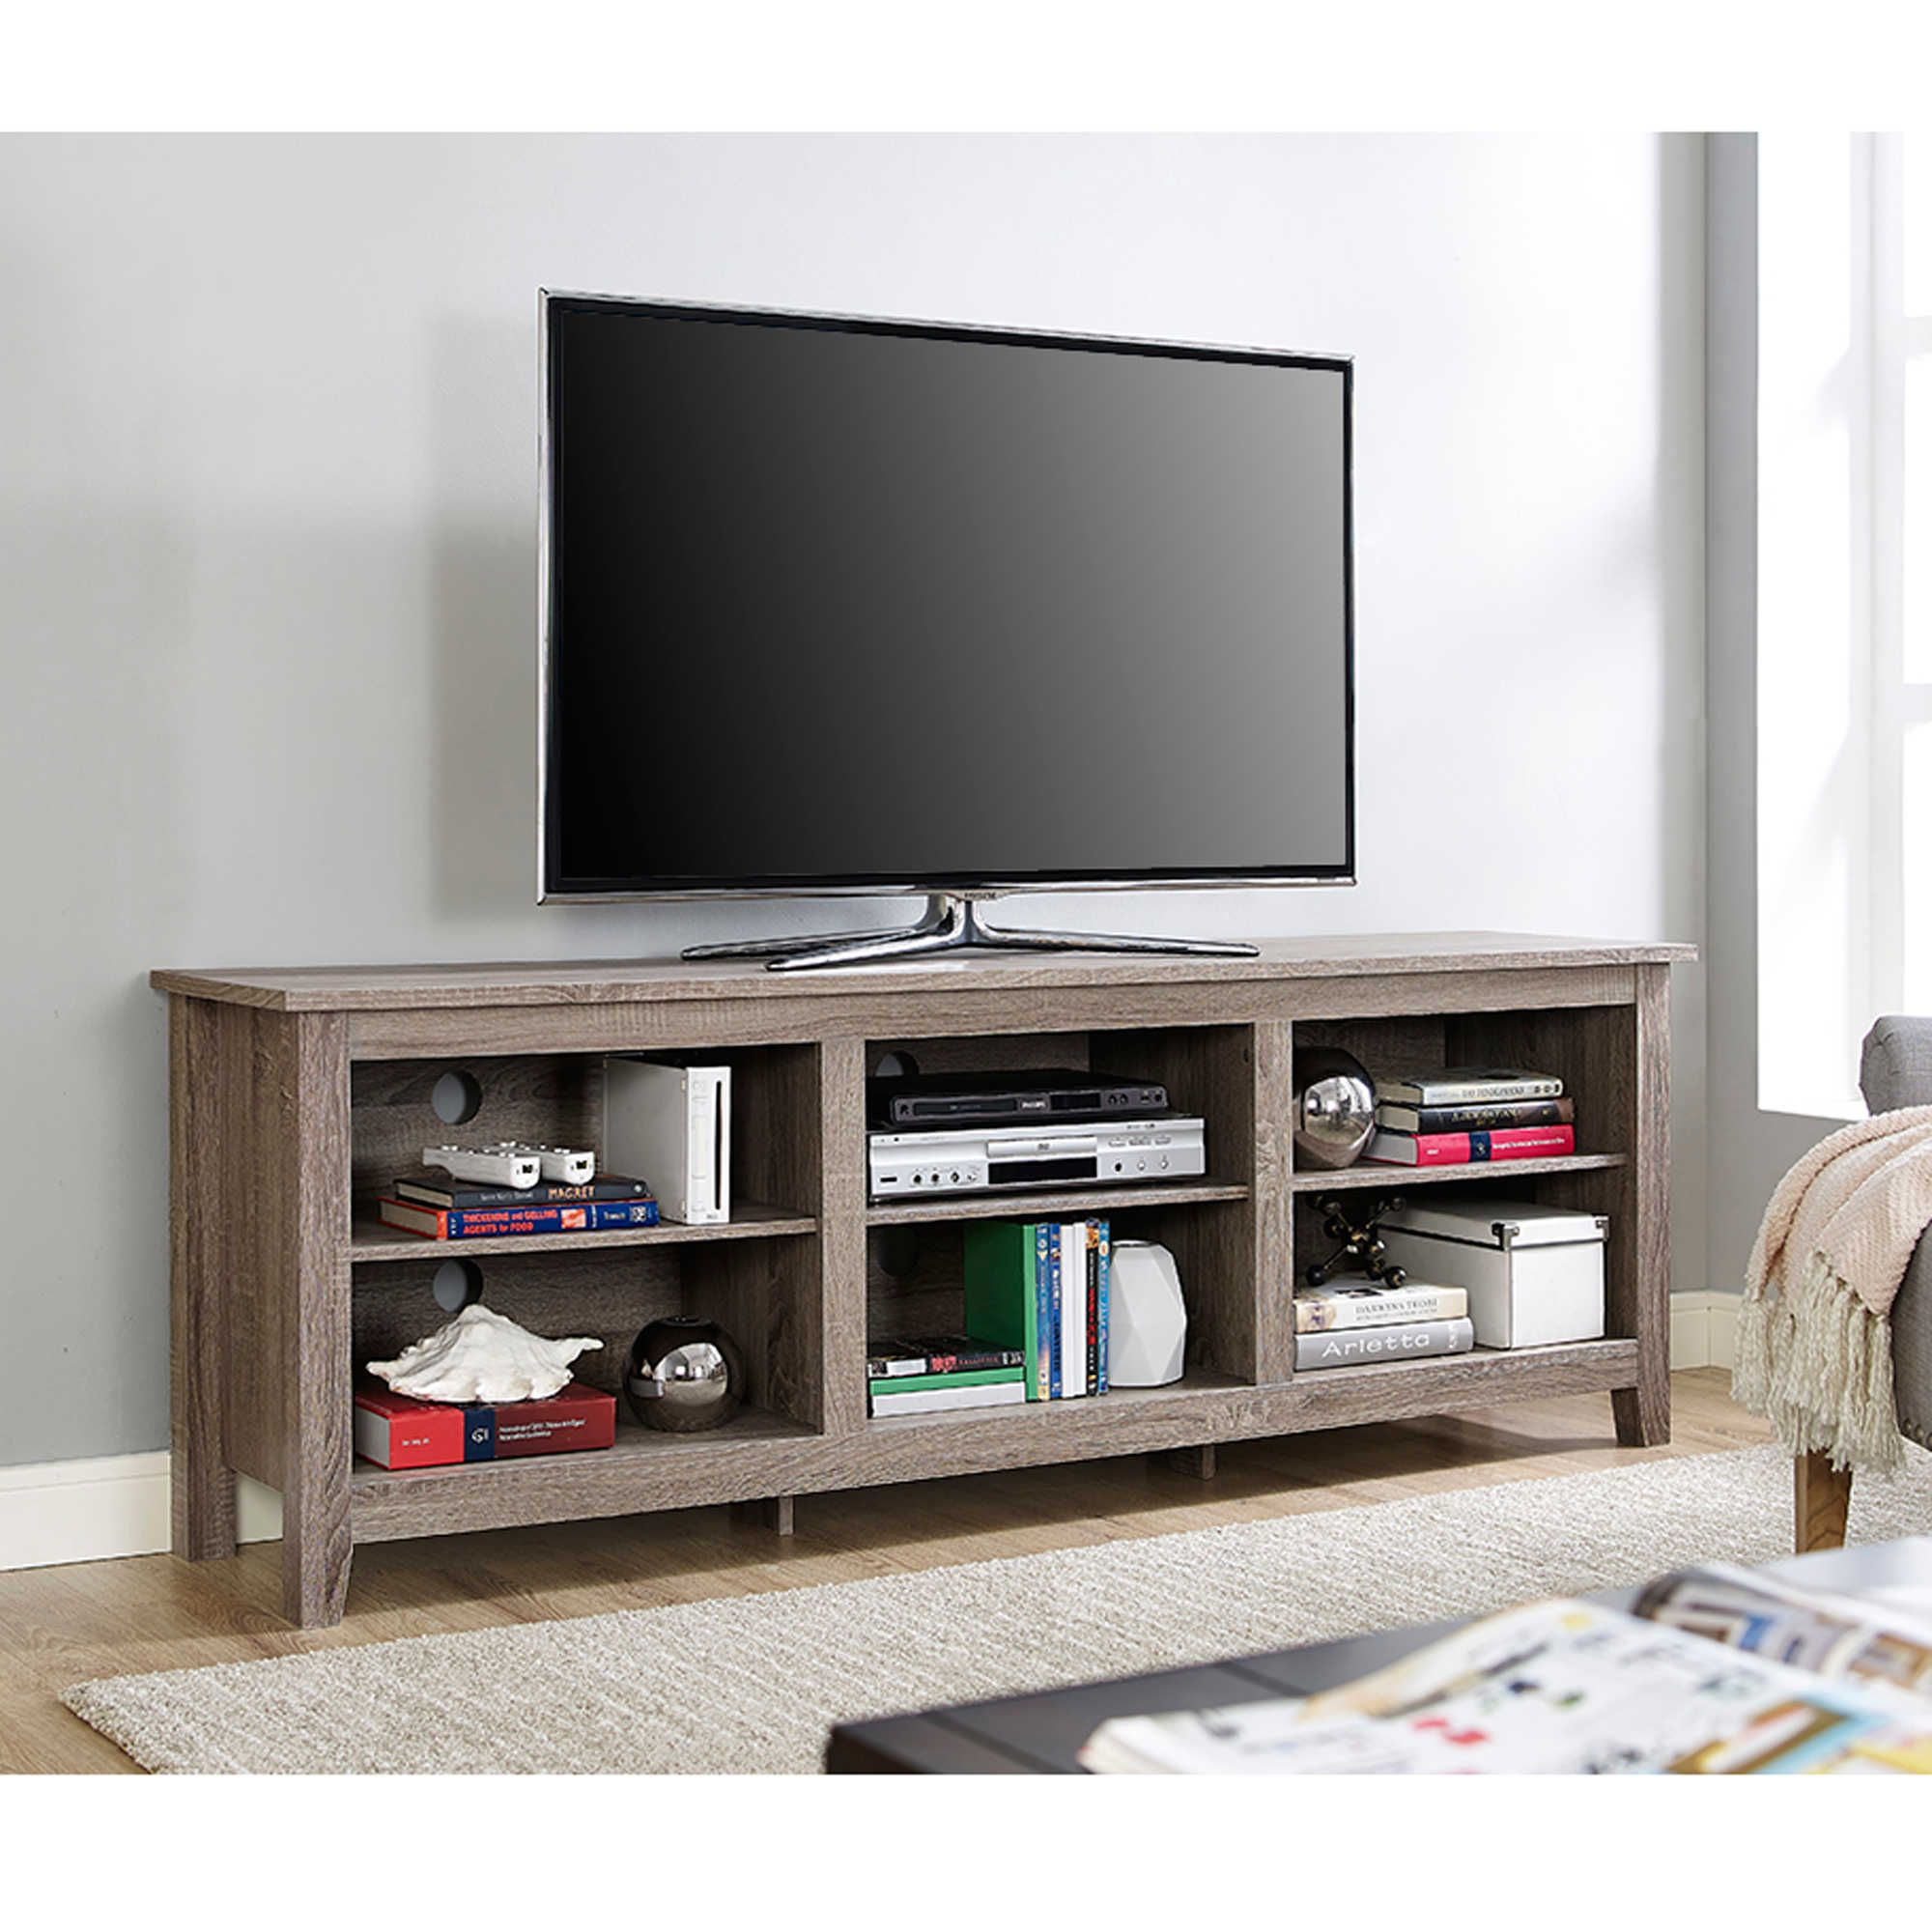 Forest Gate 70 Inch Asher Traditional Wood Tv Stand Tv Stand